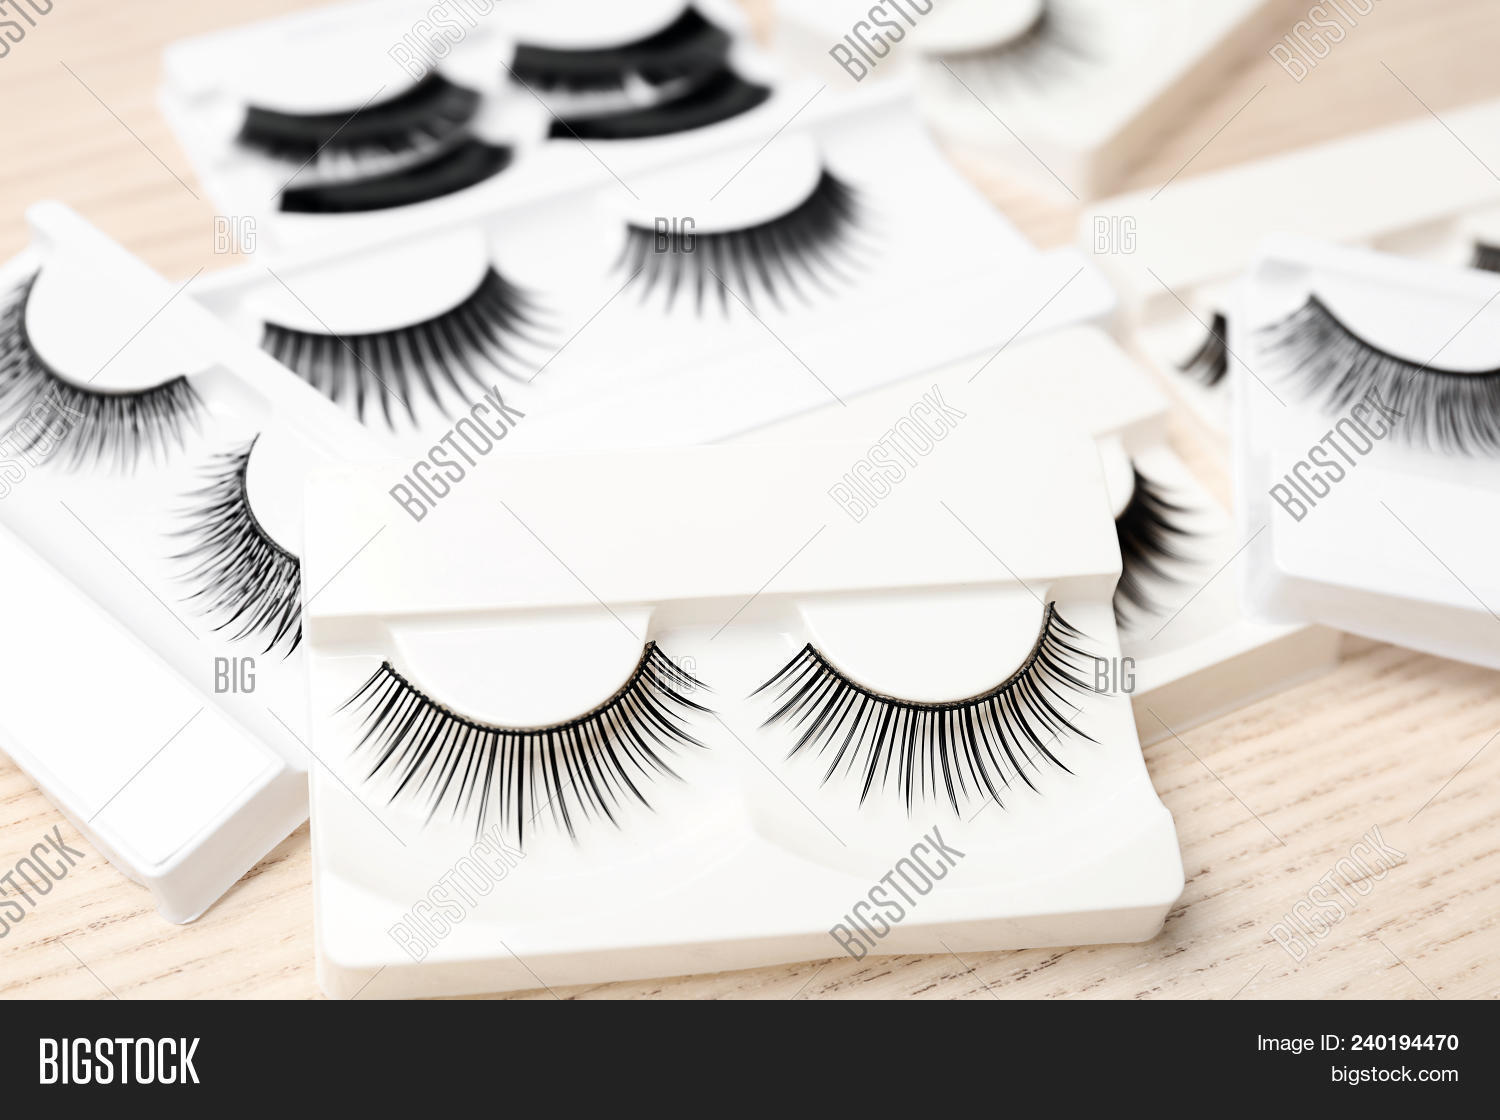 Different Types False Image Photo Free Trial Bigstock